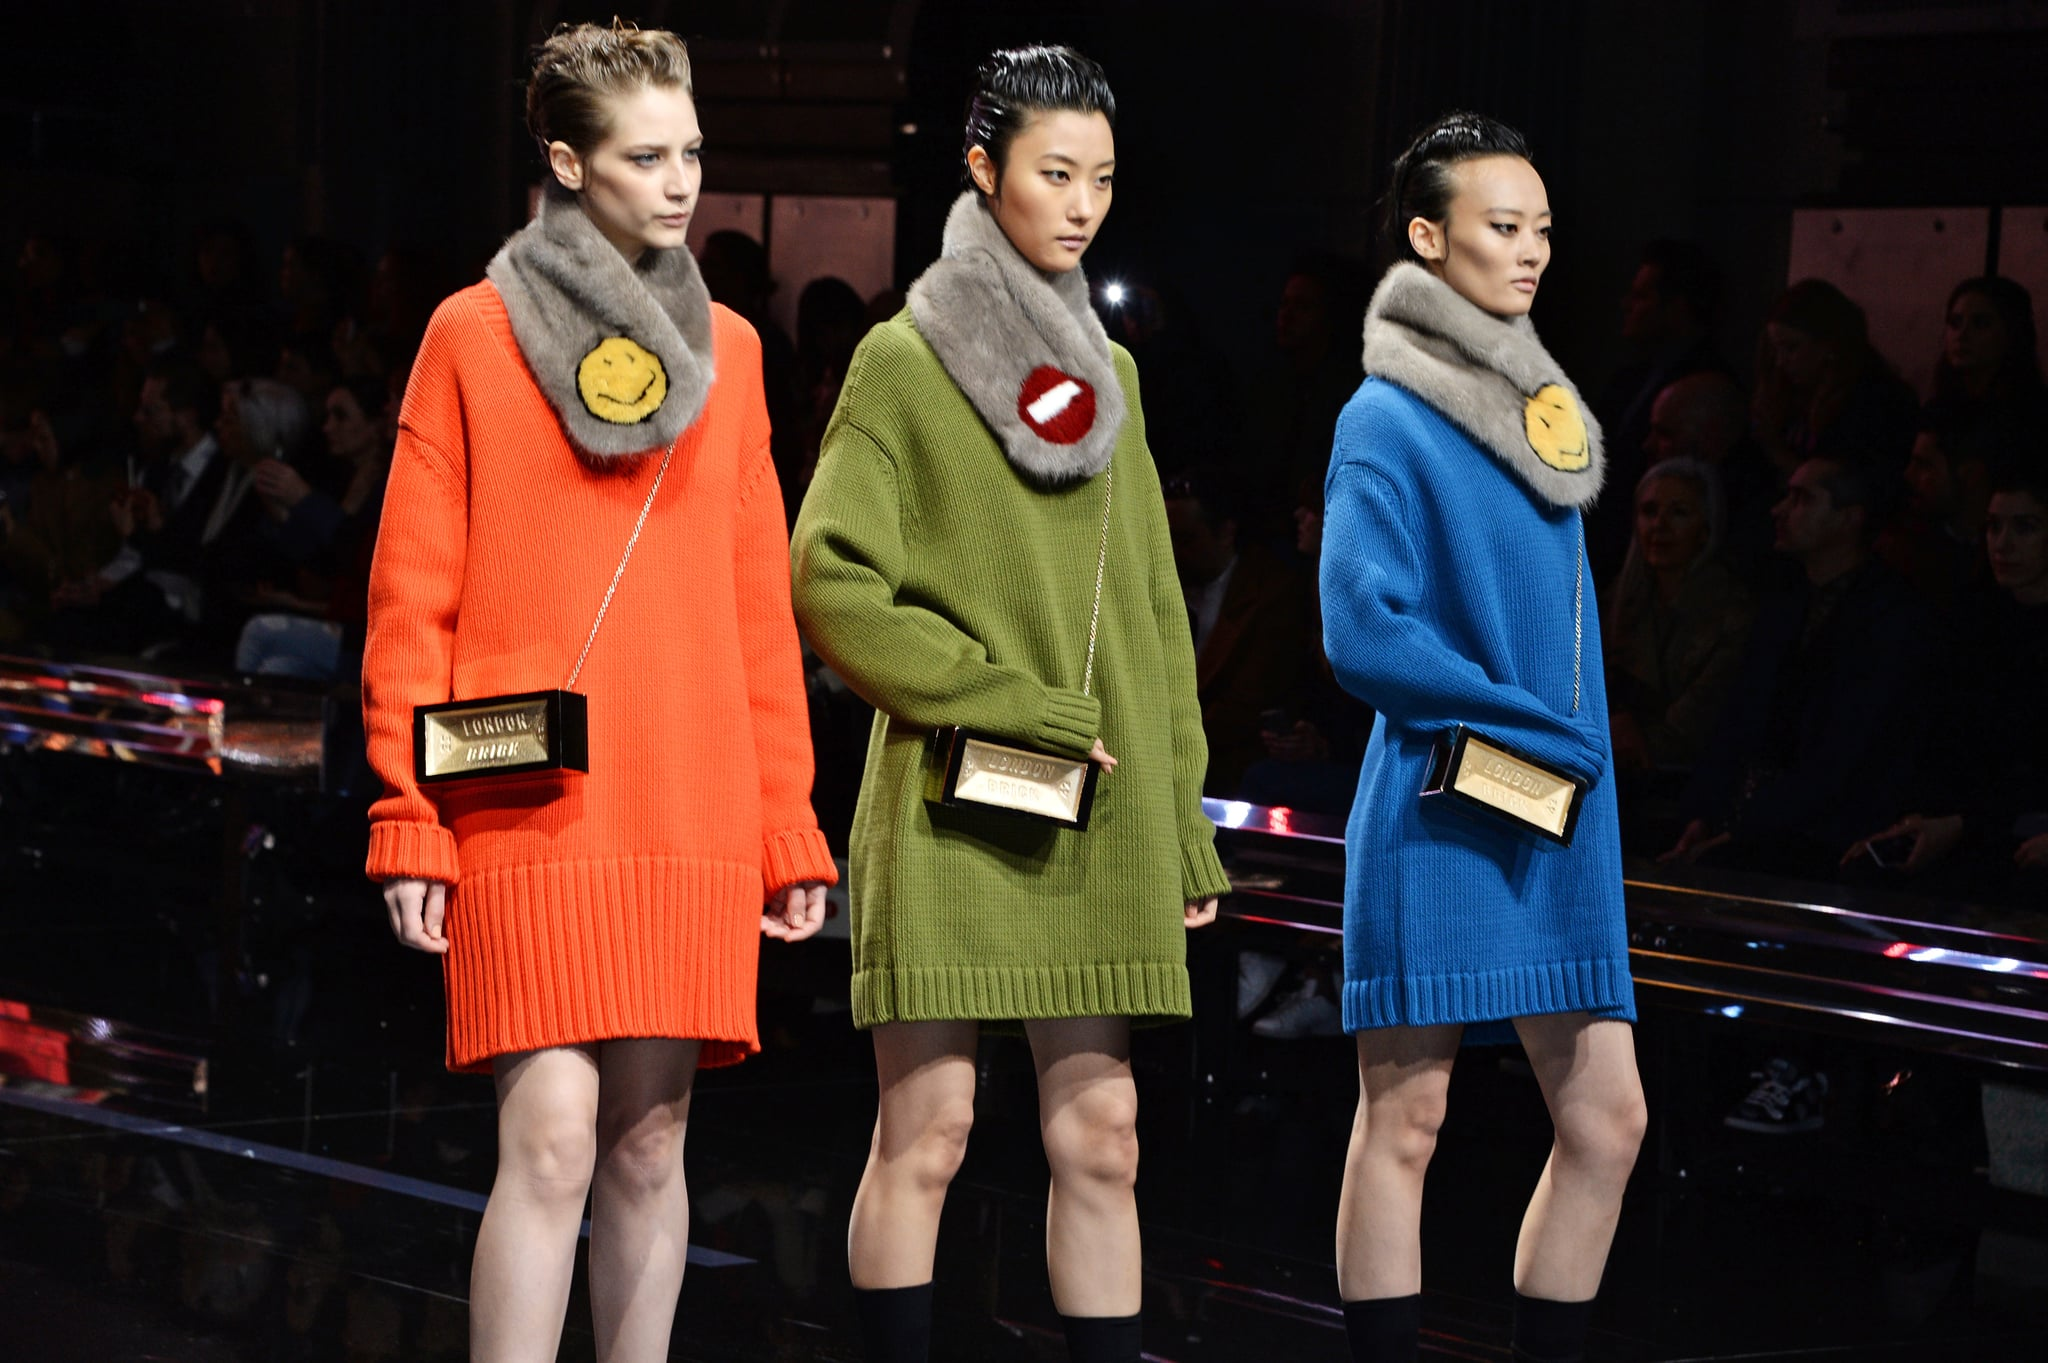 LONDON, ENGLAND - FEBRUARY 24:  Models walk the runway at the Anya Hindmarch AW15 Presentation during London Fashion Week at Old Billingsgate Market on February 24, 2015 in London, England.  (Photo by David M. Benett/Getty Images for Anya Hindmarch)